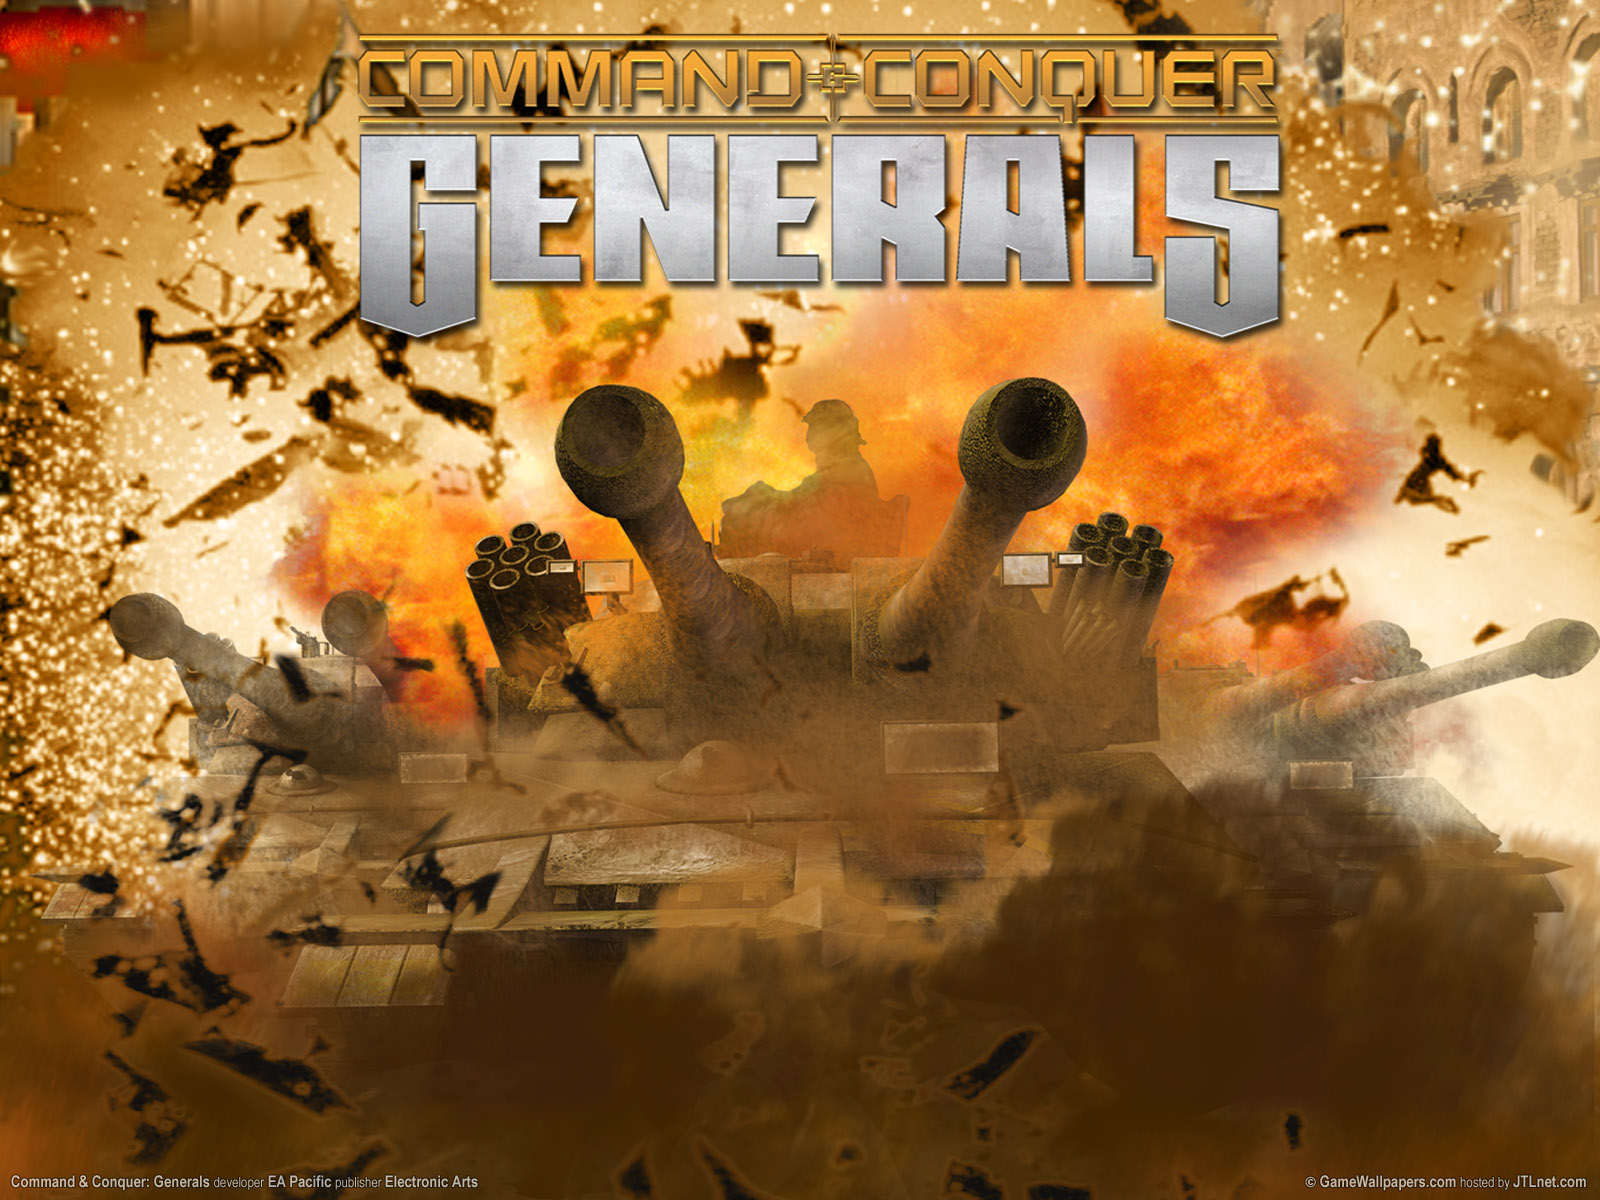 Ghost Recon Future Soldier Hd Wallpaper Command Amp Conquer Generals Wallpapers Command Amp Conquer